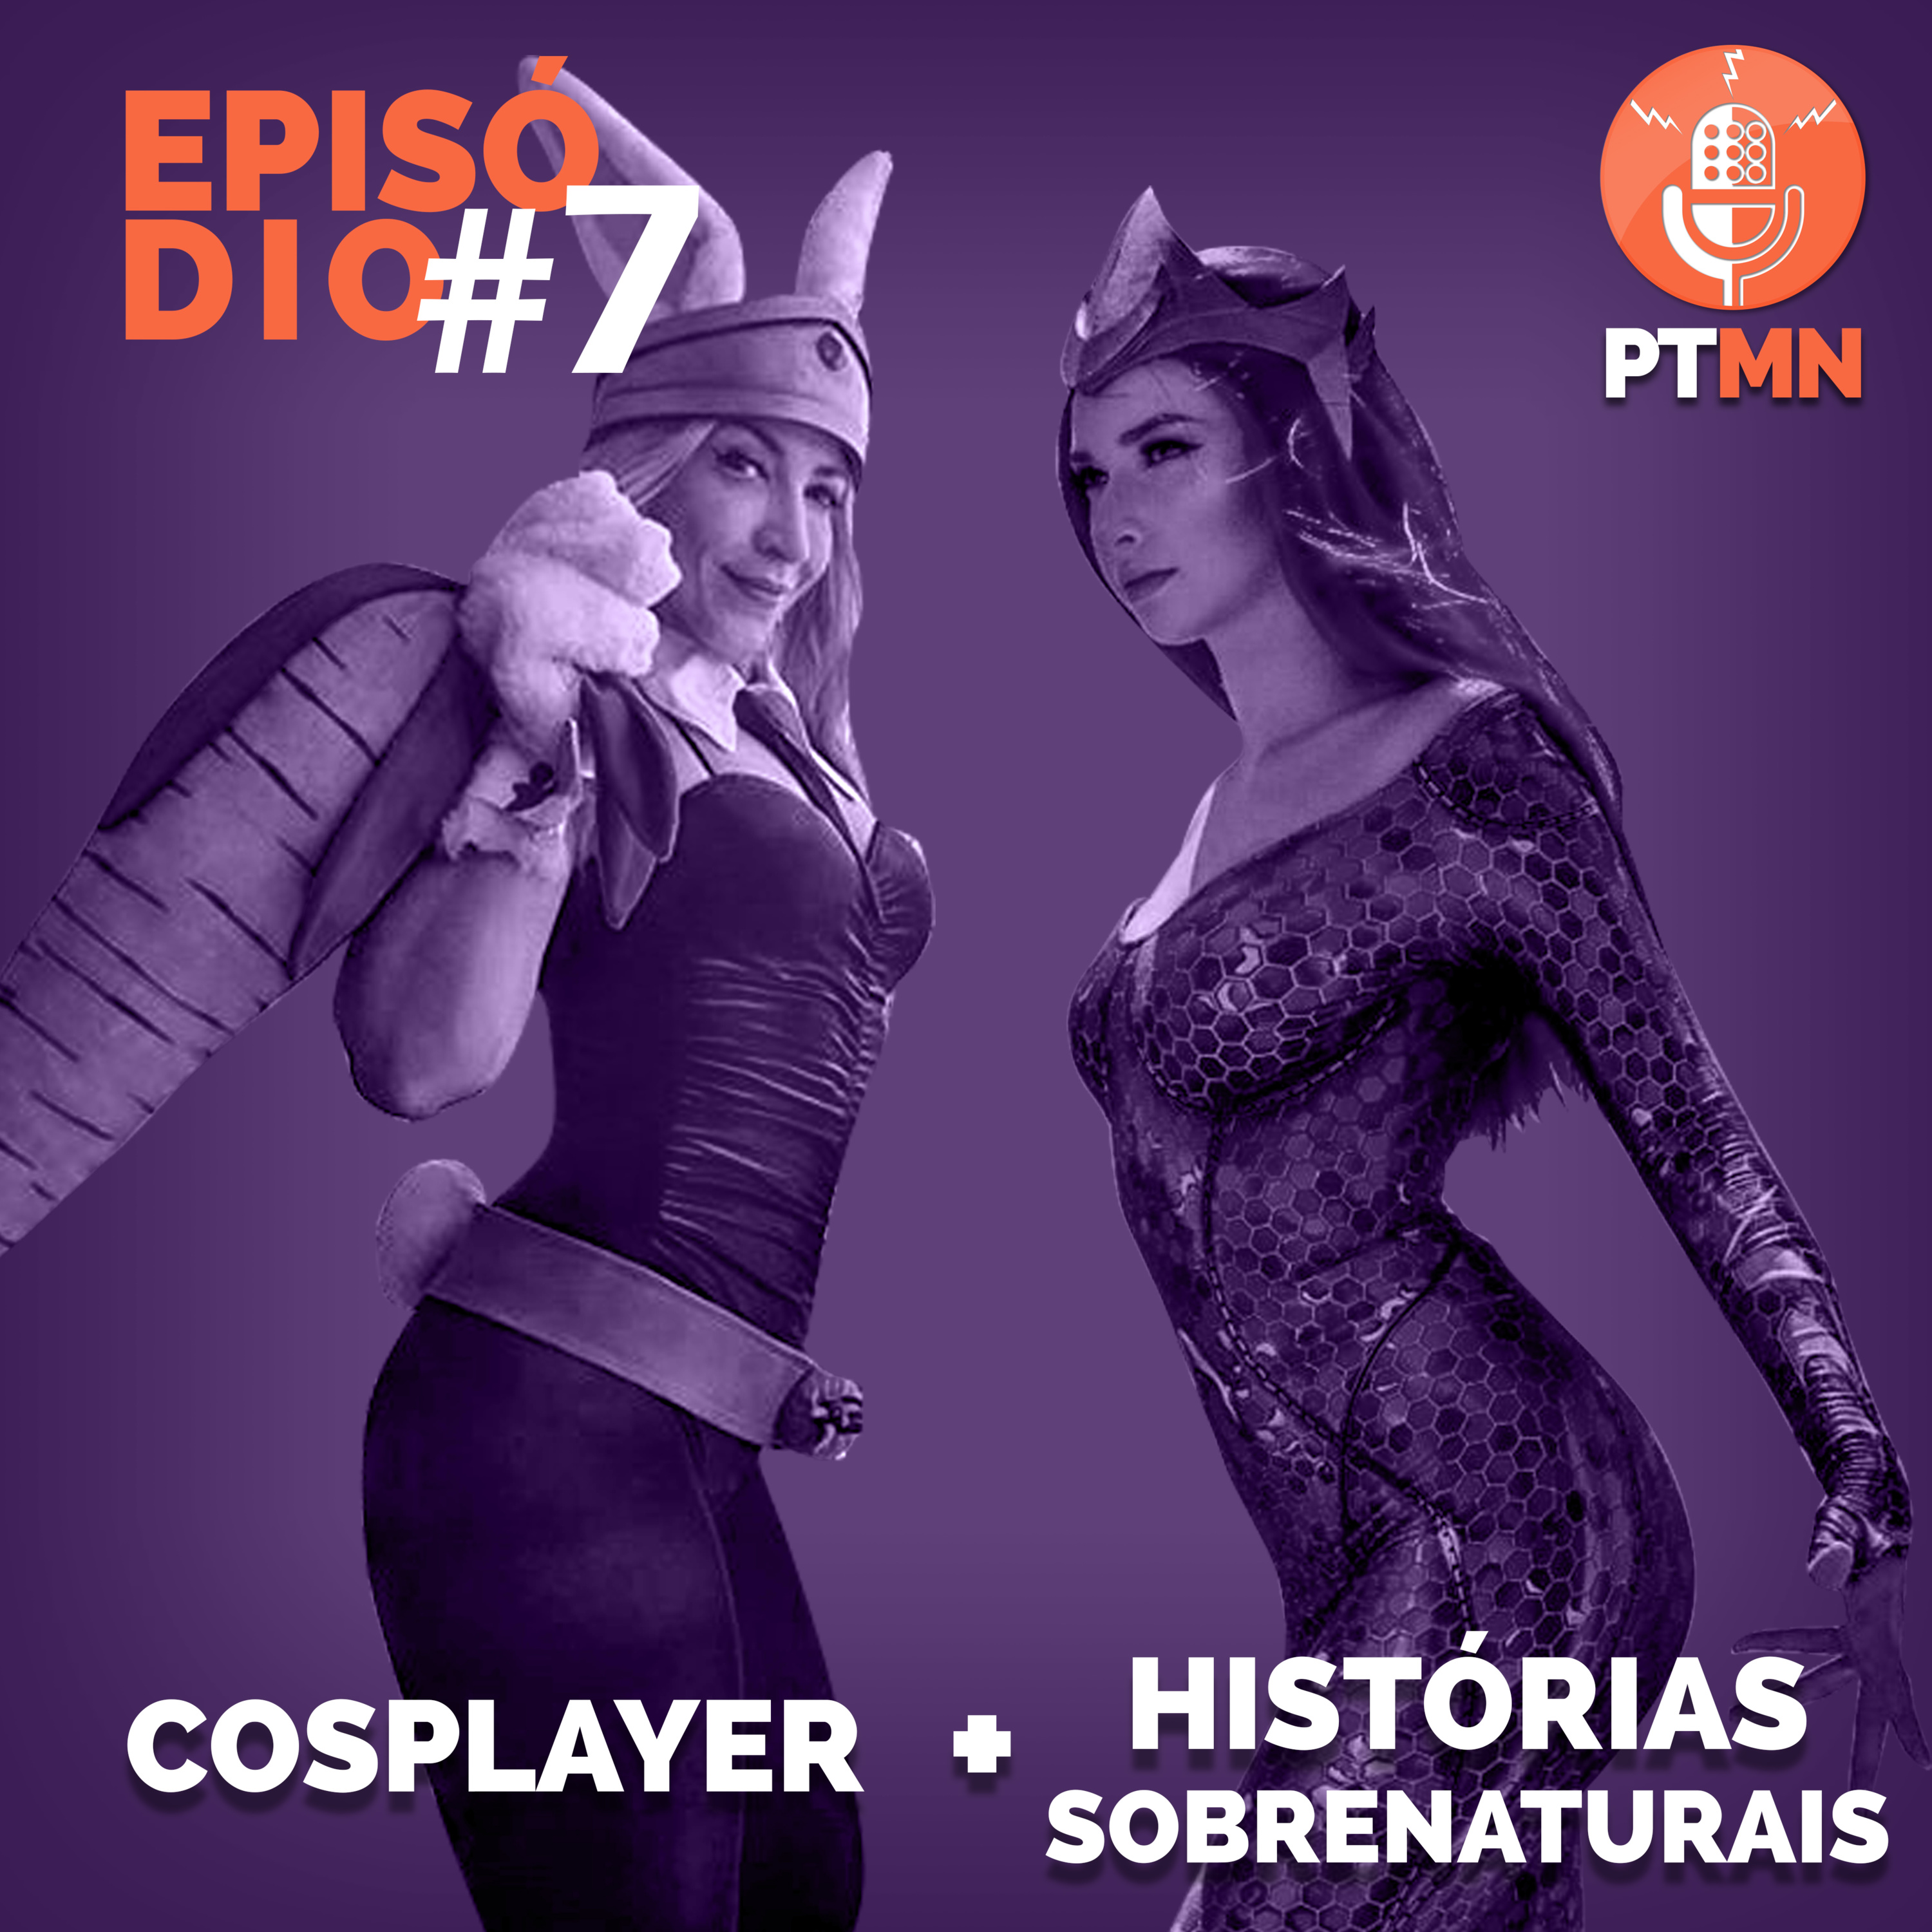 Cosplayer + Histórias sobrenaturais (PTMN #7)